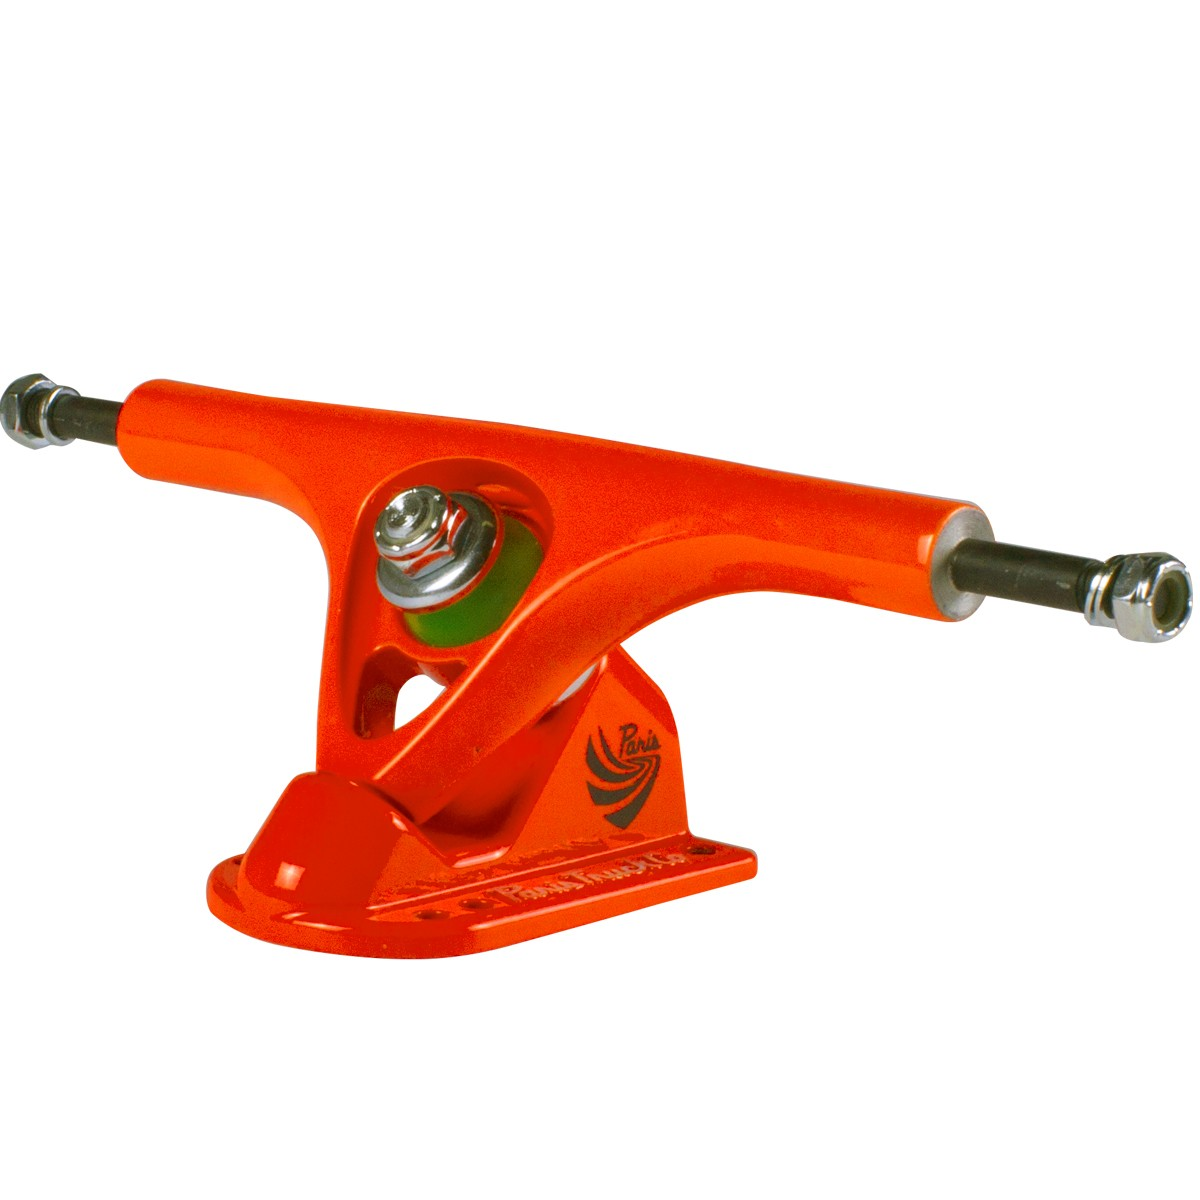 Paris 180mm Longboard Trucks - Orange V2